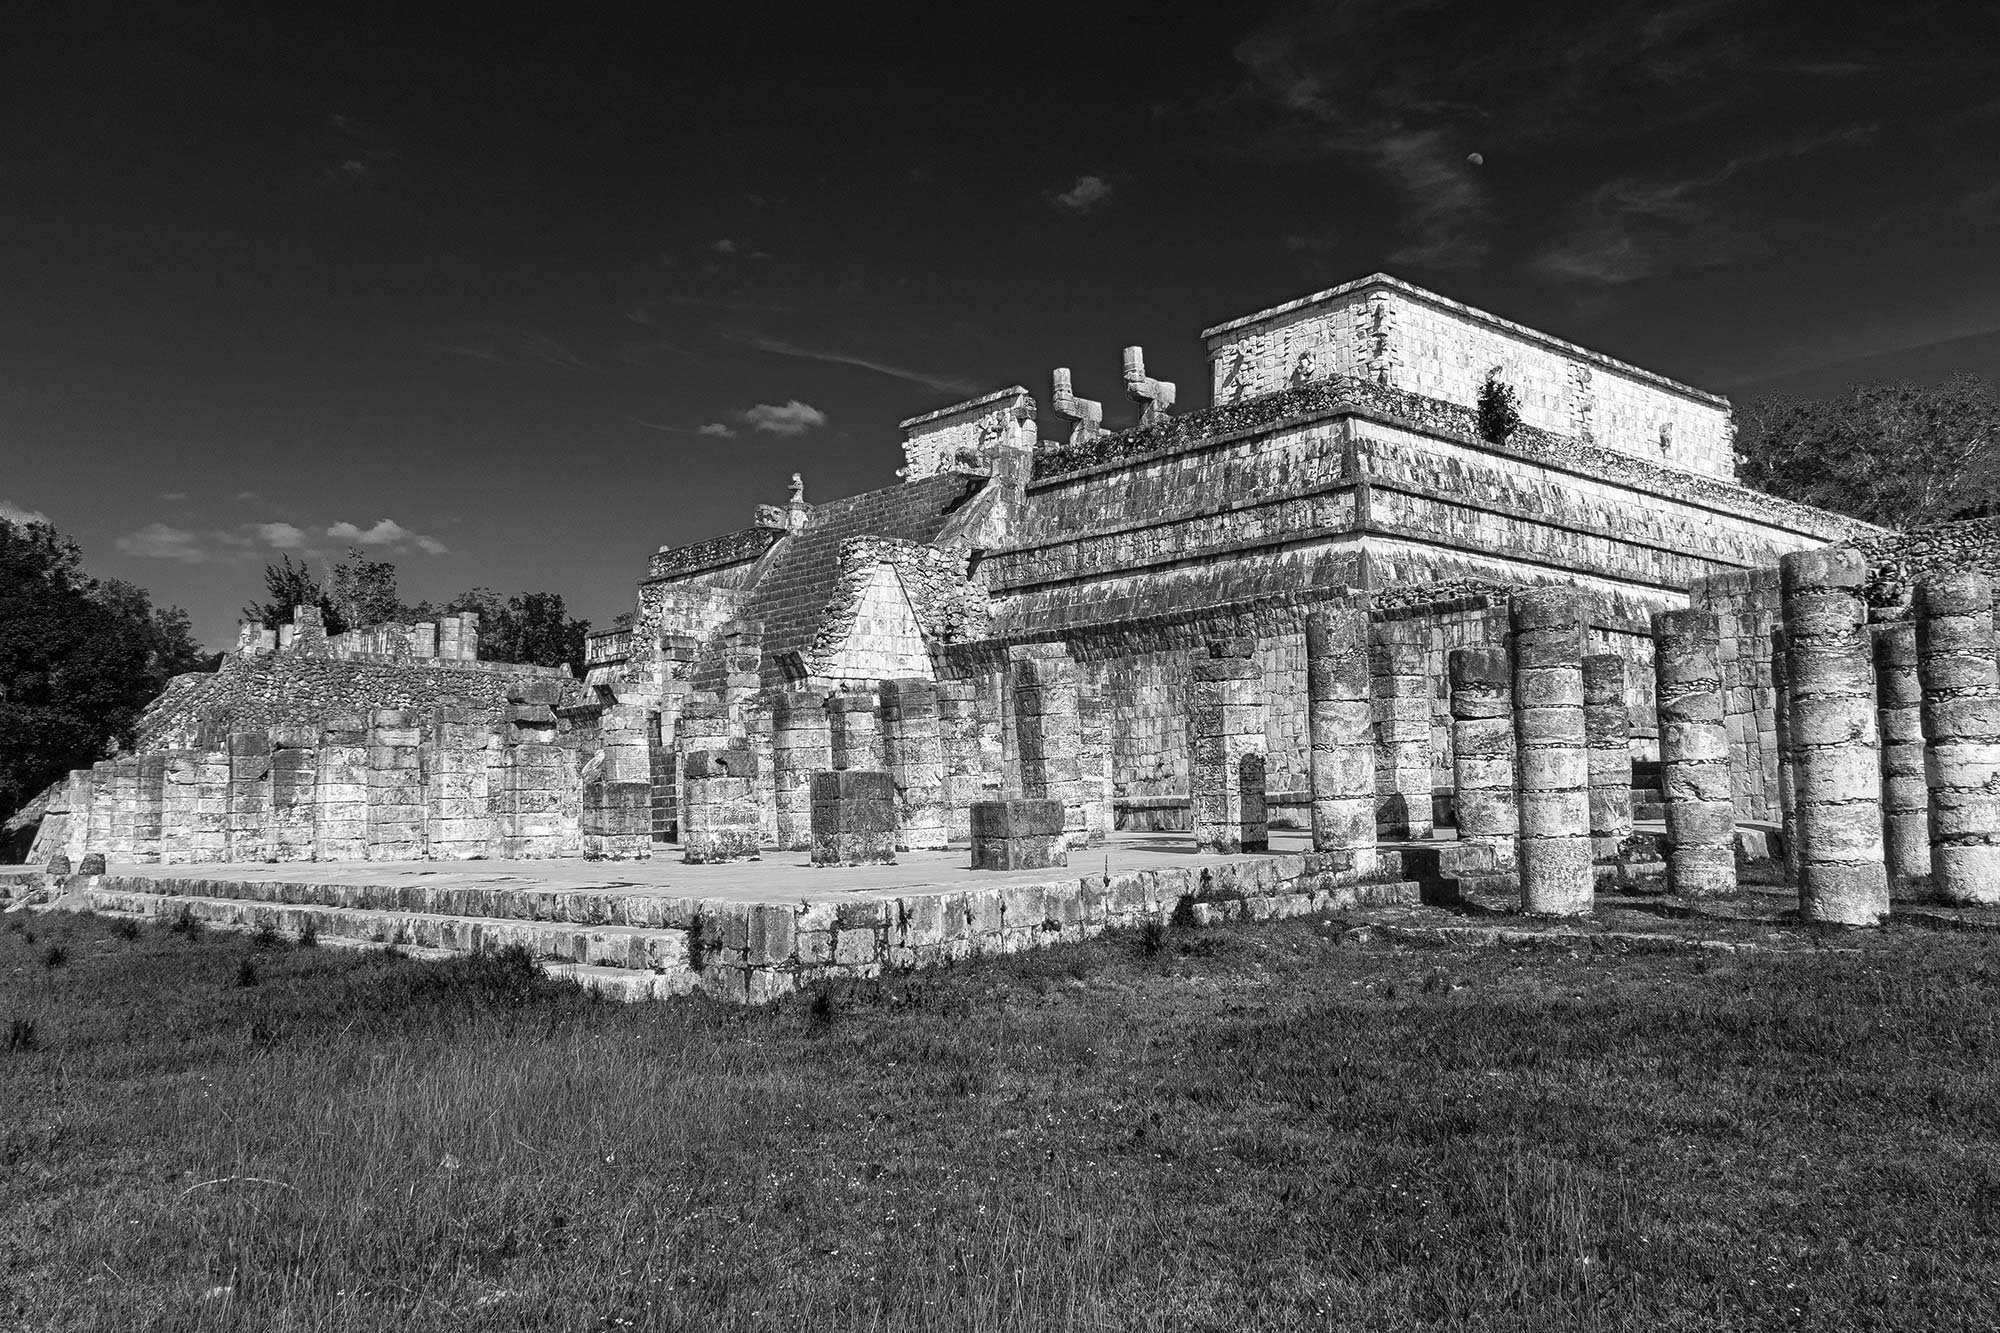 The Temple of the Warriors in Chichen Itza